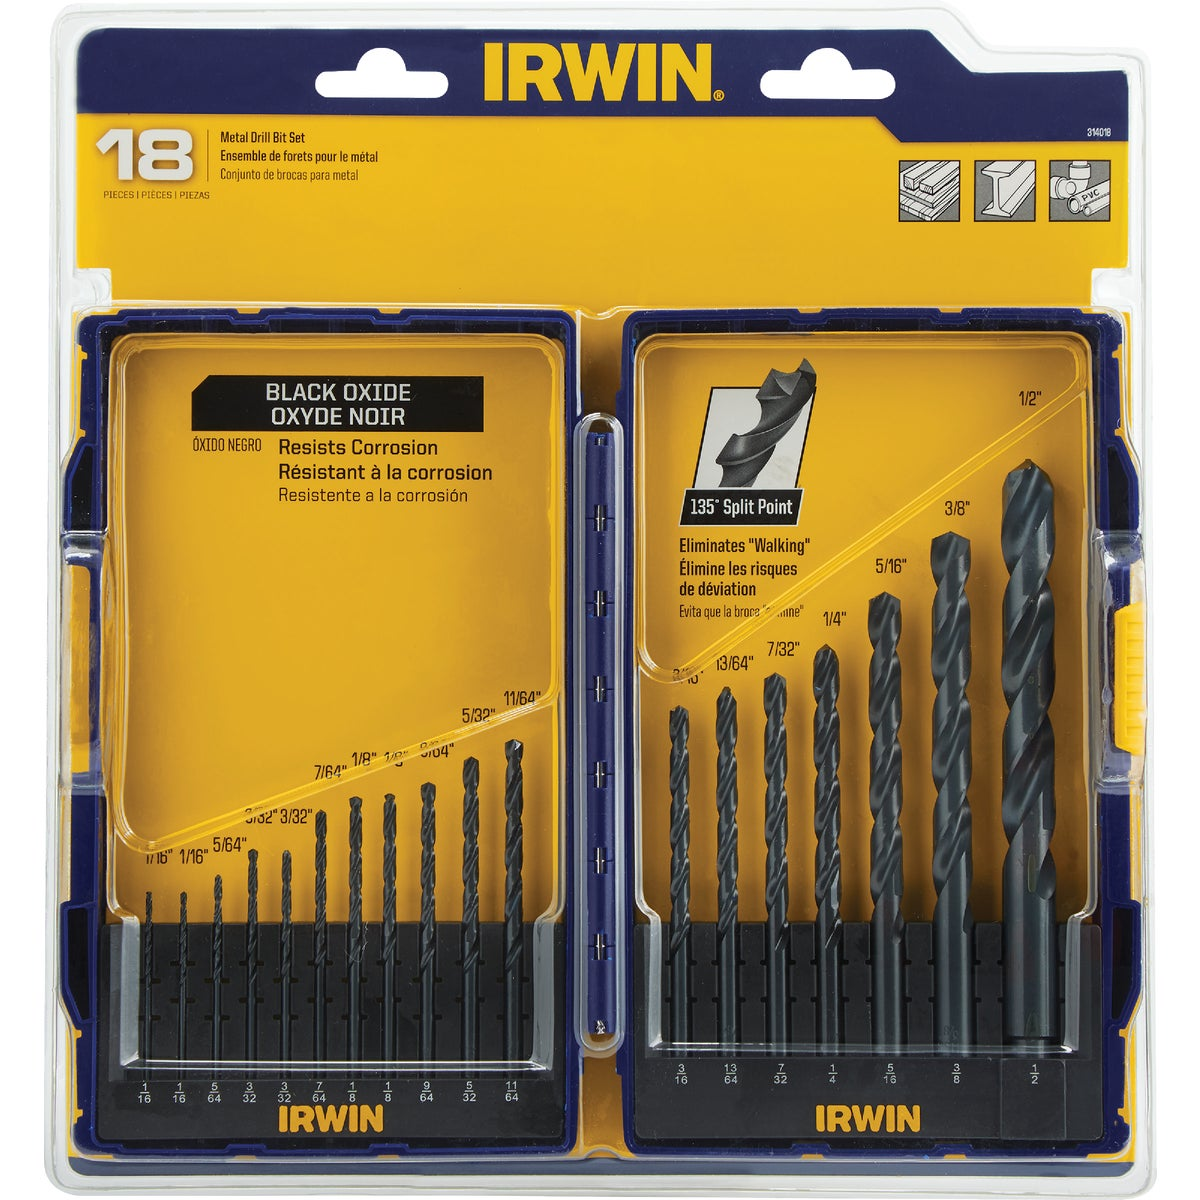 20PC BLK OXIDE BIT SET - DW1177 by DeWalt